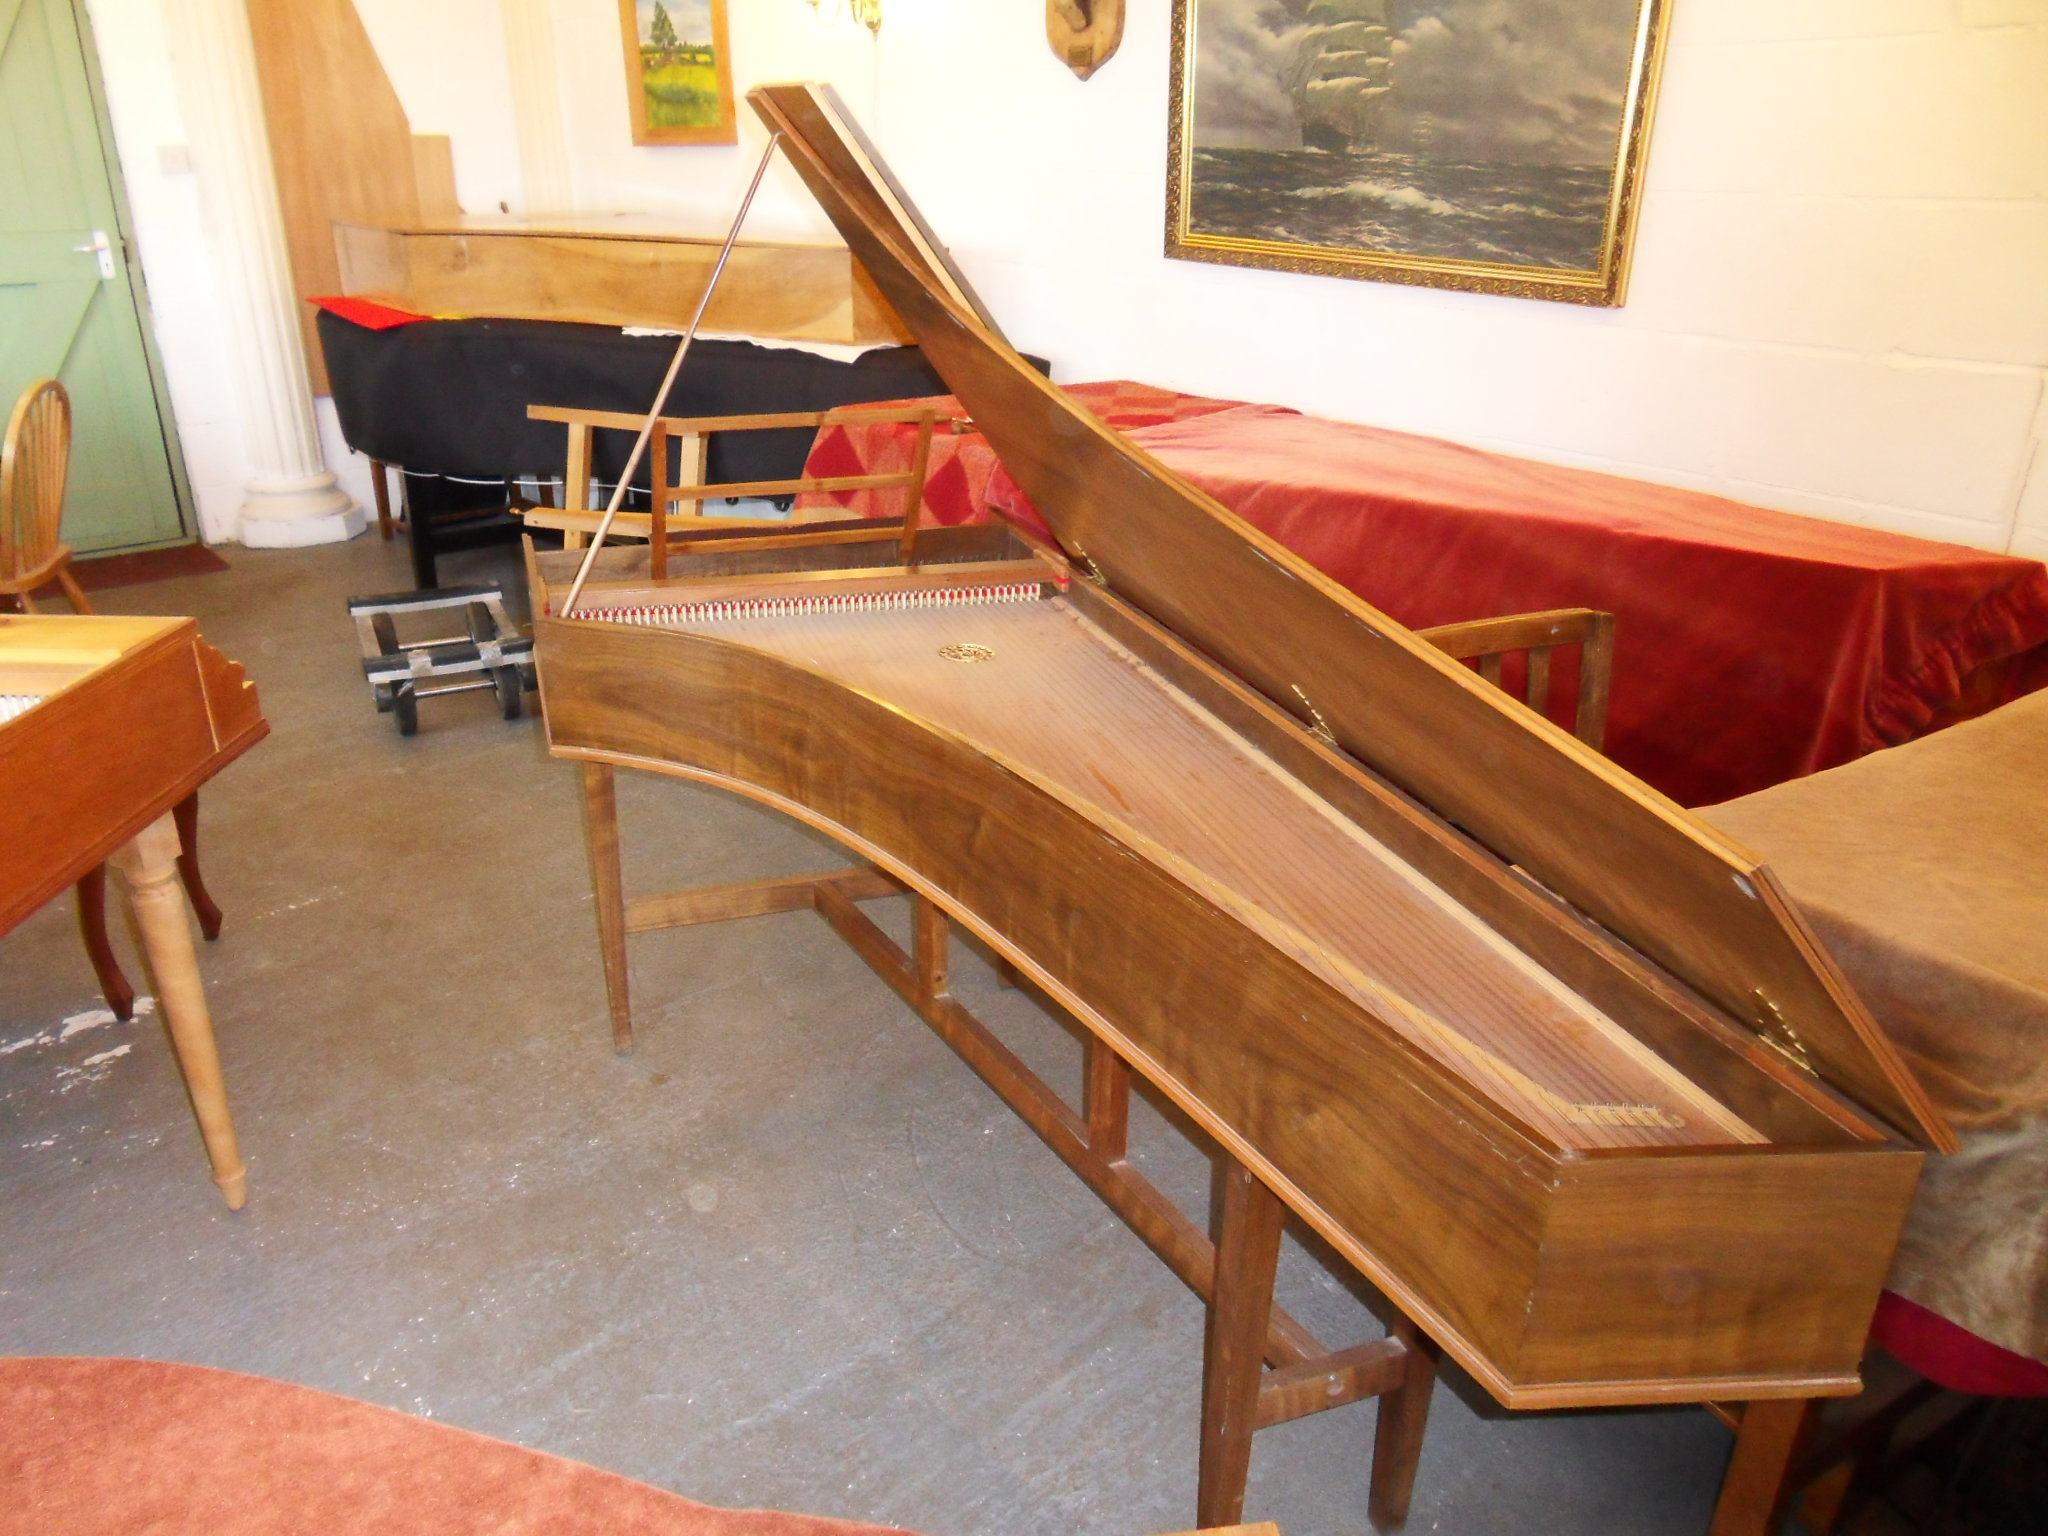 Harpsichord sold to another harpsichord maker Handheld Harpsichord